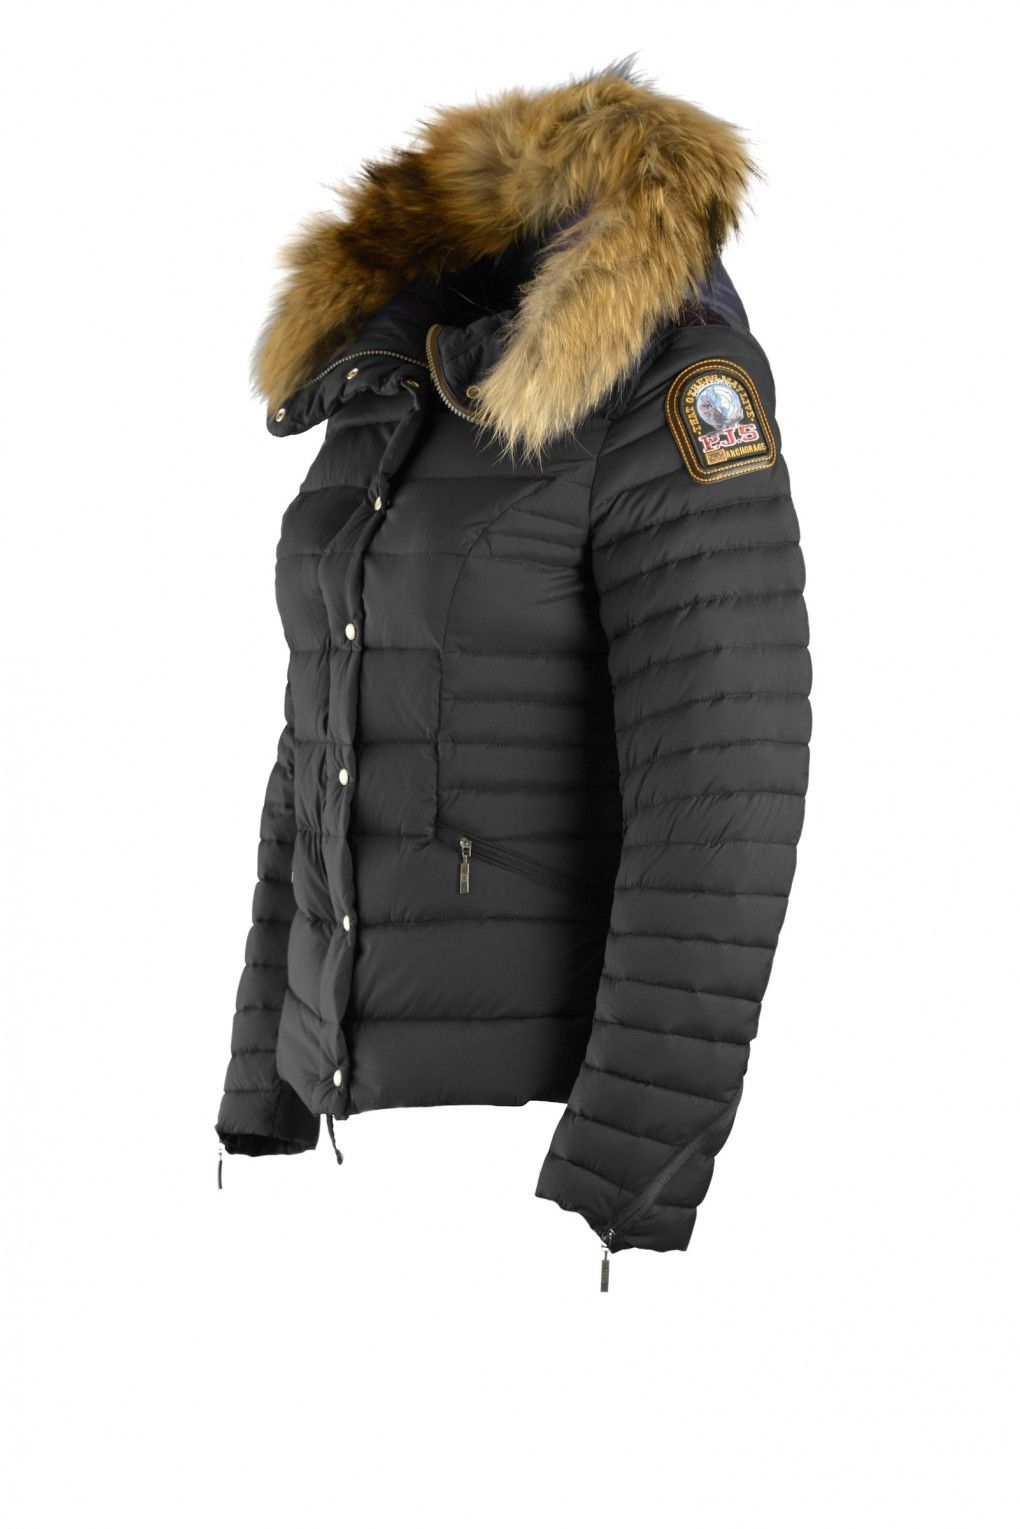 f634c7a59751 MARLENE - WOMAN - 20 den evolution - Outerwear - WOMAN | Parajumpers ...